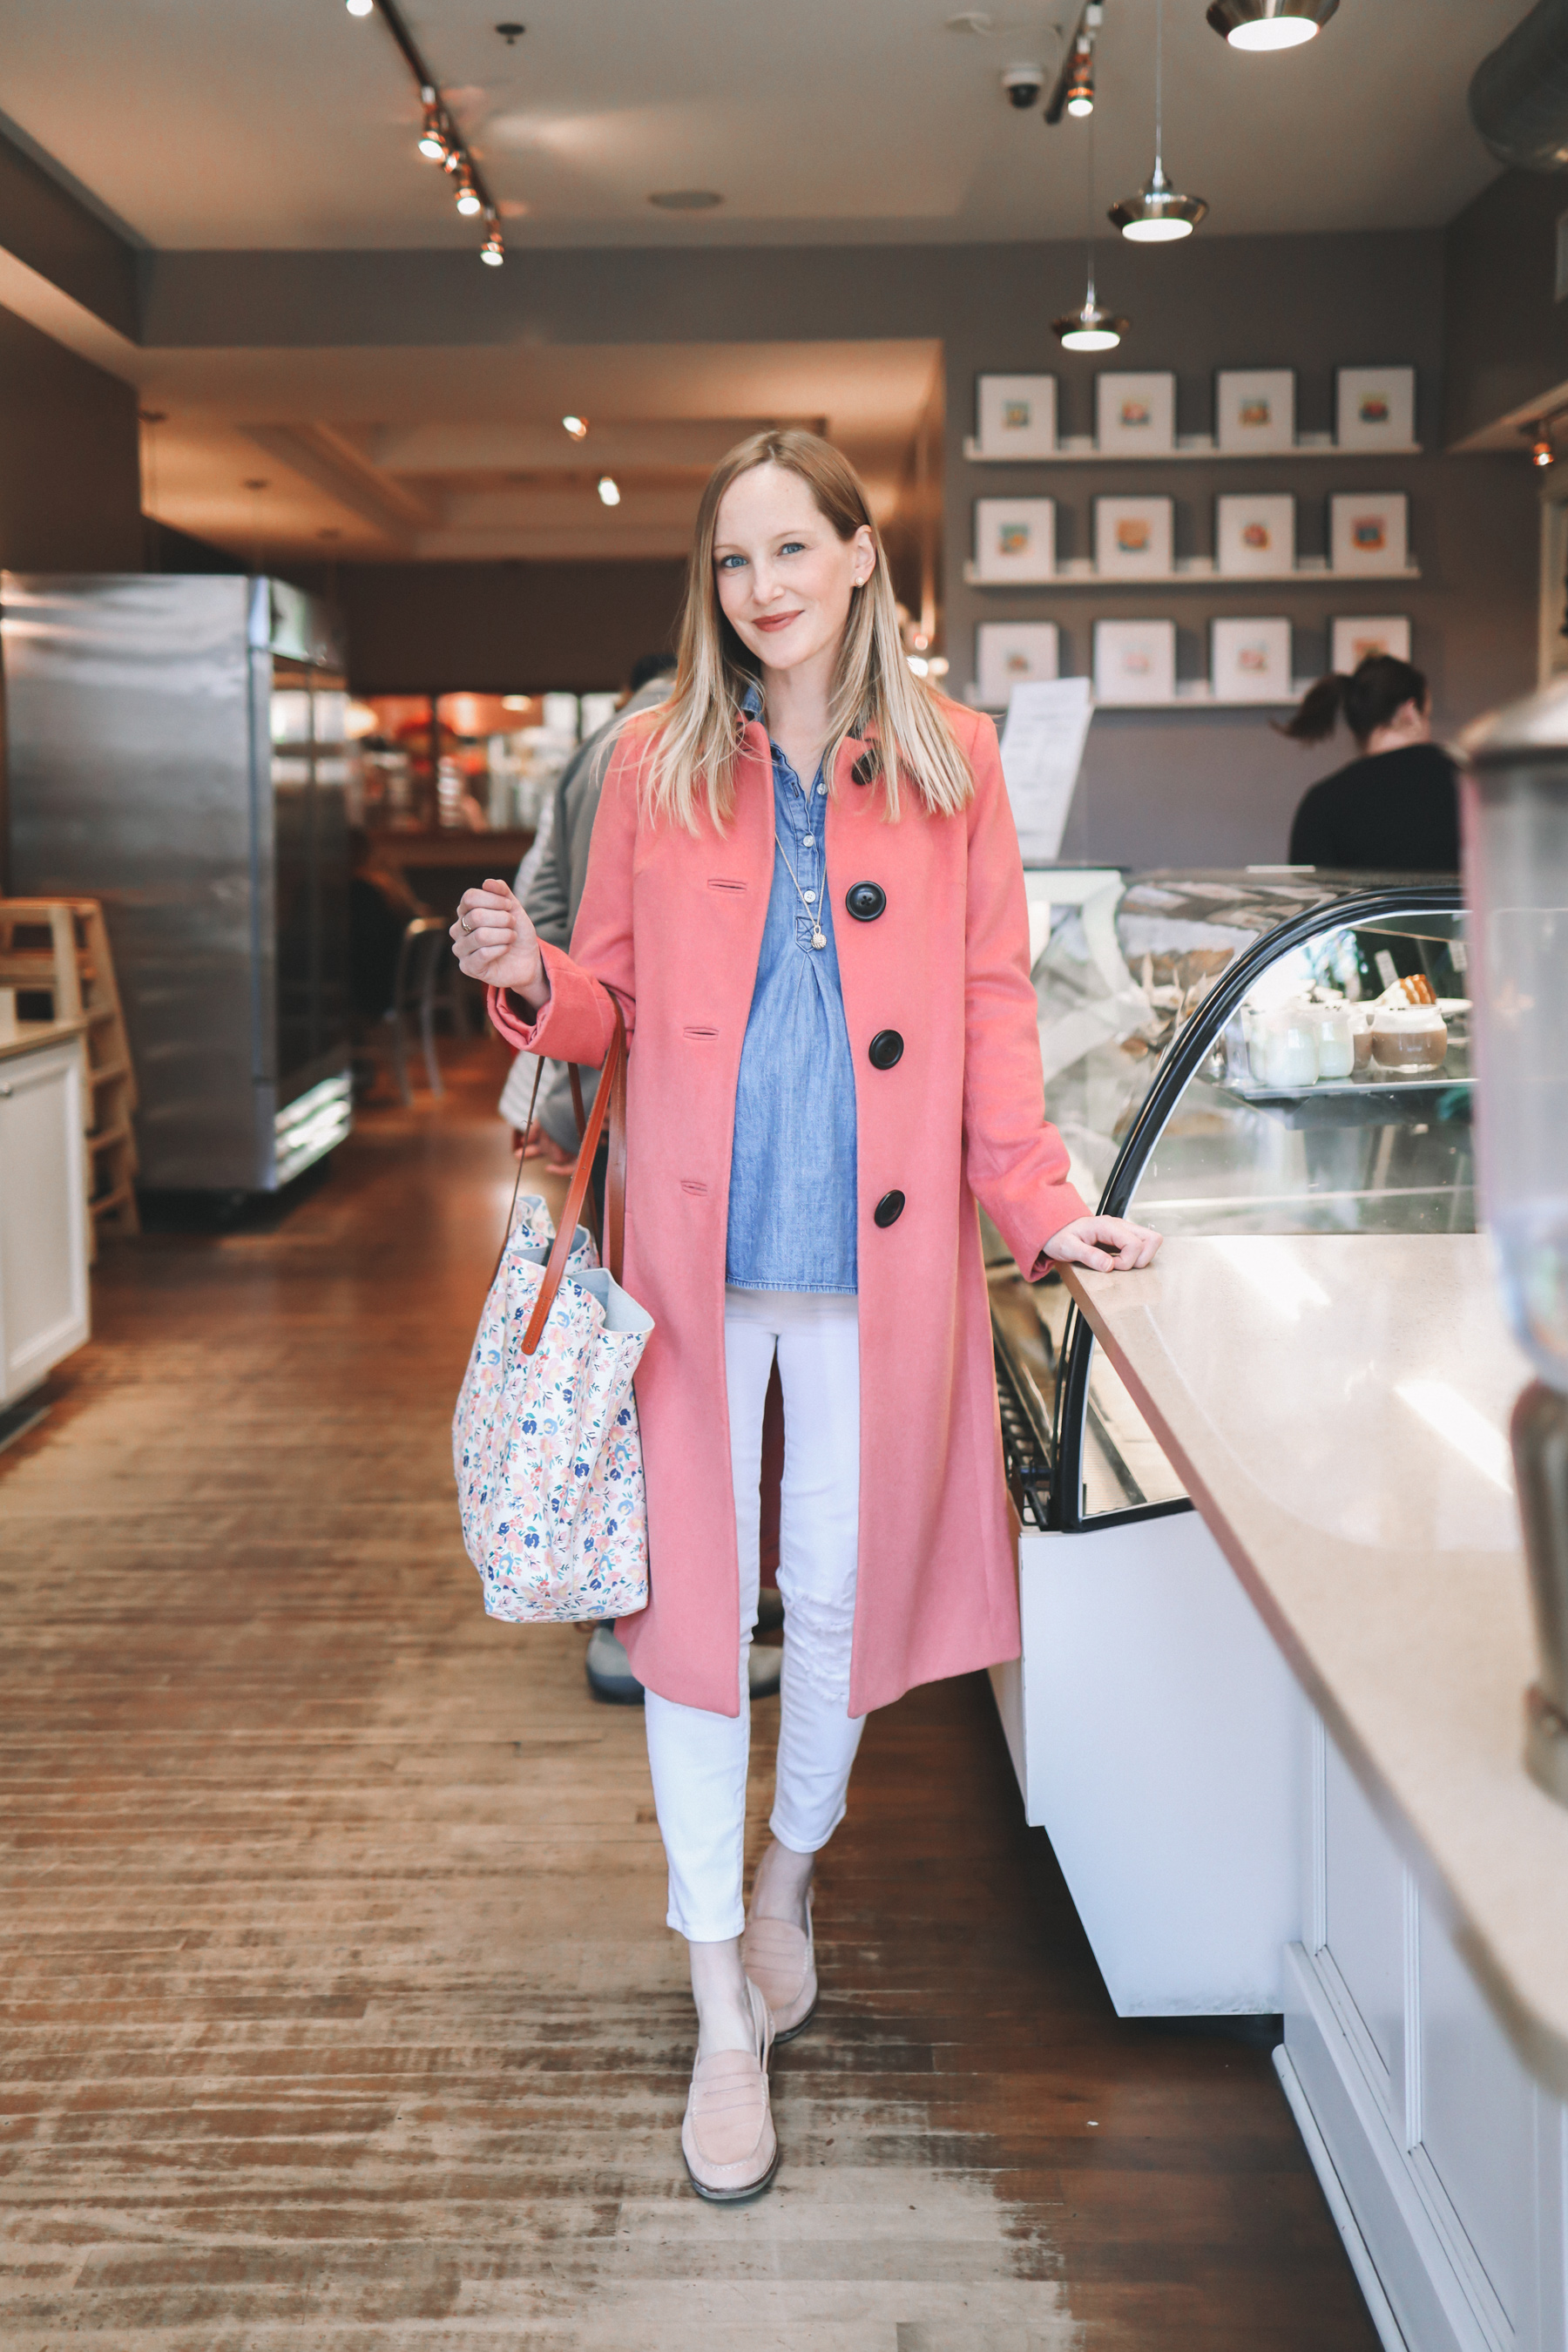 Kelly's outfit: Pink Boden Coat  / Brook & York Parker Knot Pendant /Sperry Loafers / White Maternity Jeans